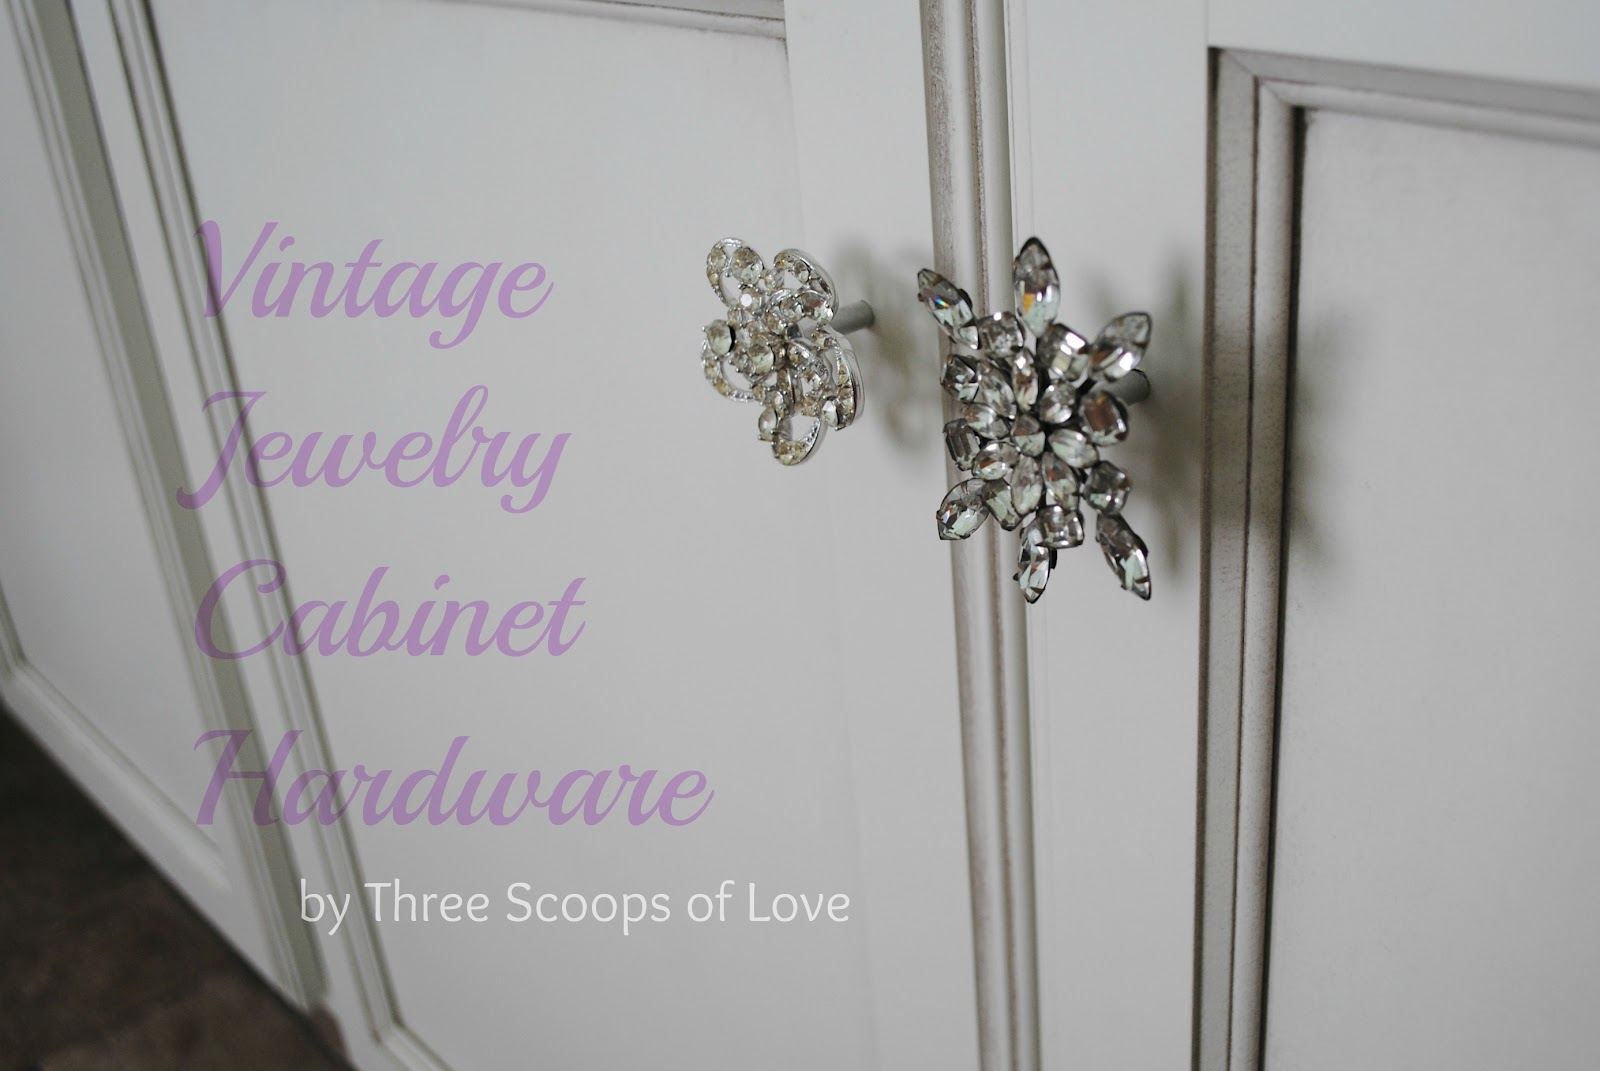 Three Scoops of Love: Vintage Jewelry Cabinet Hardware